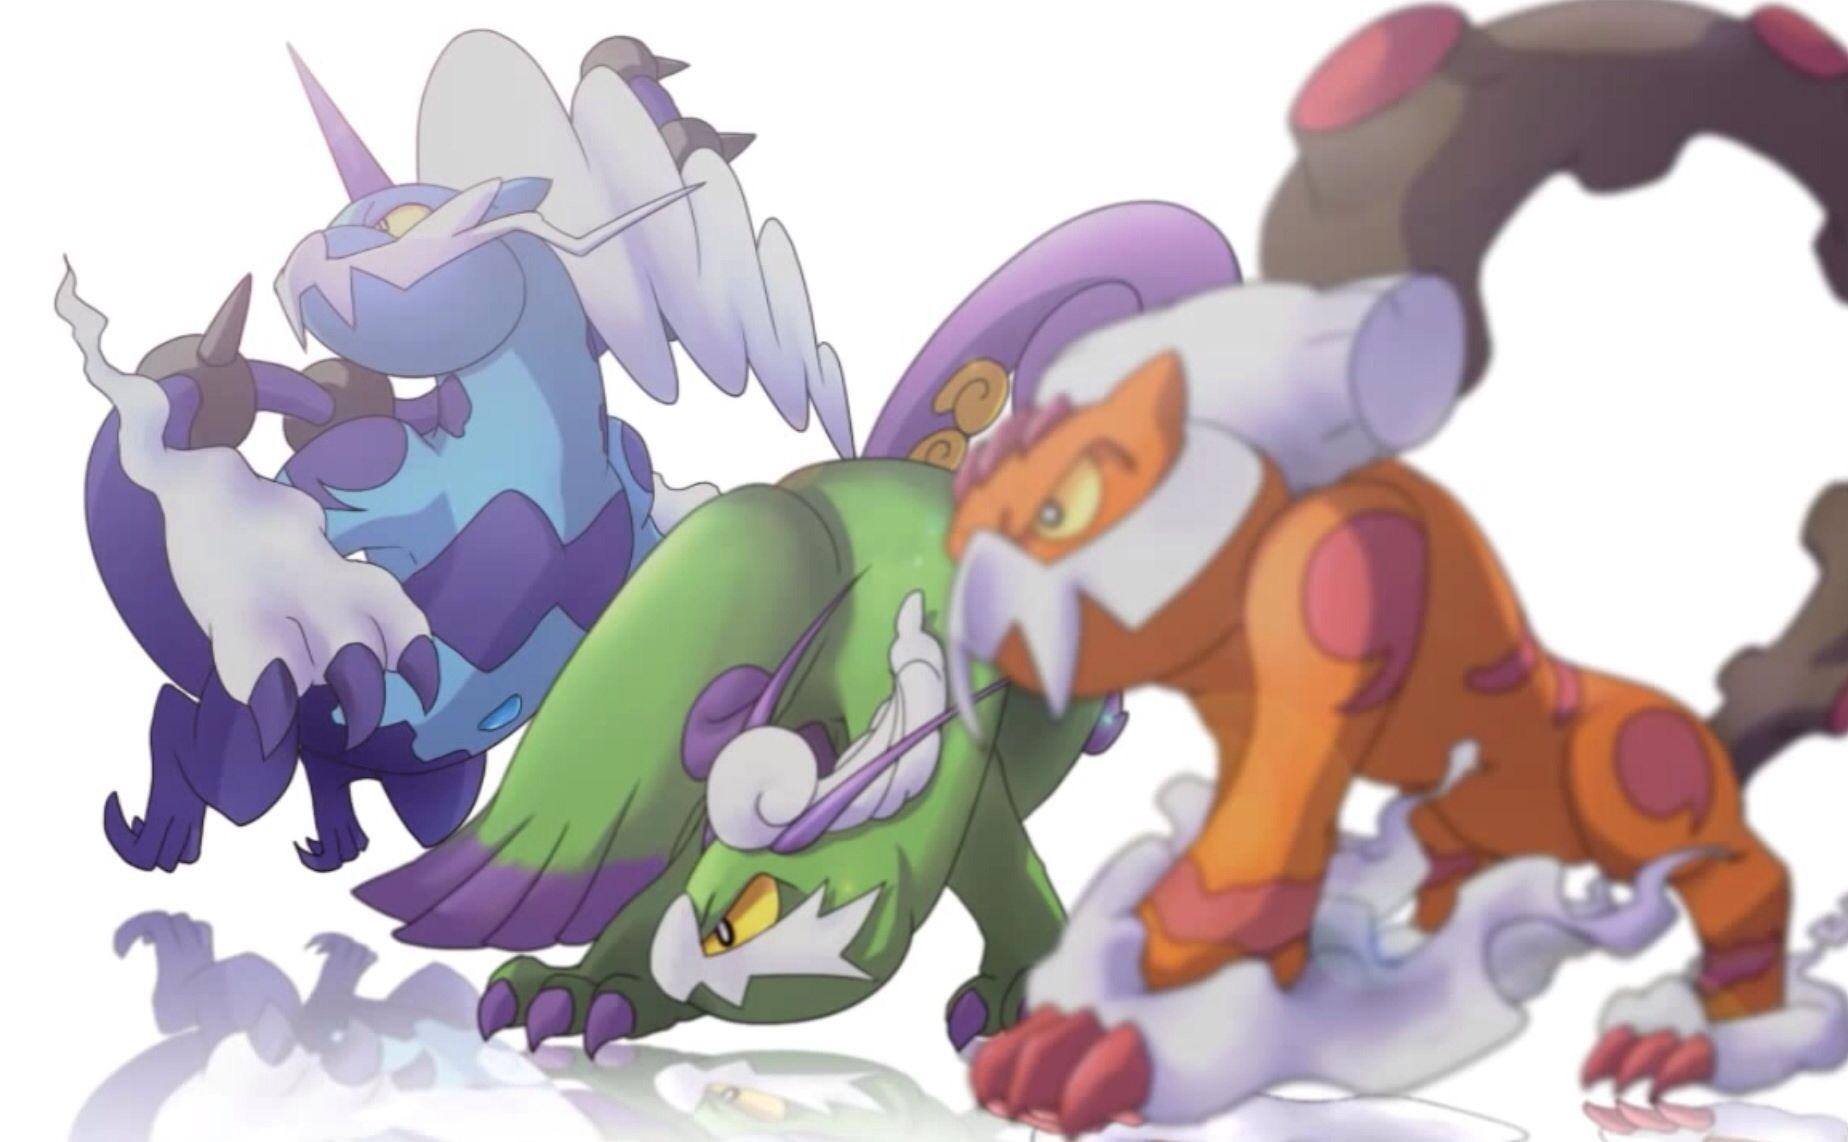 Alternate forms of Landorus, Tornadus, and Thundurus